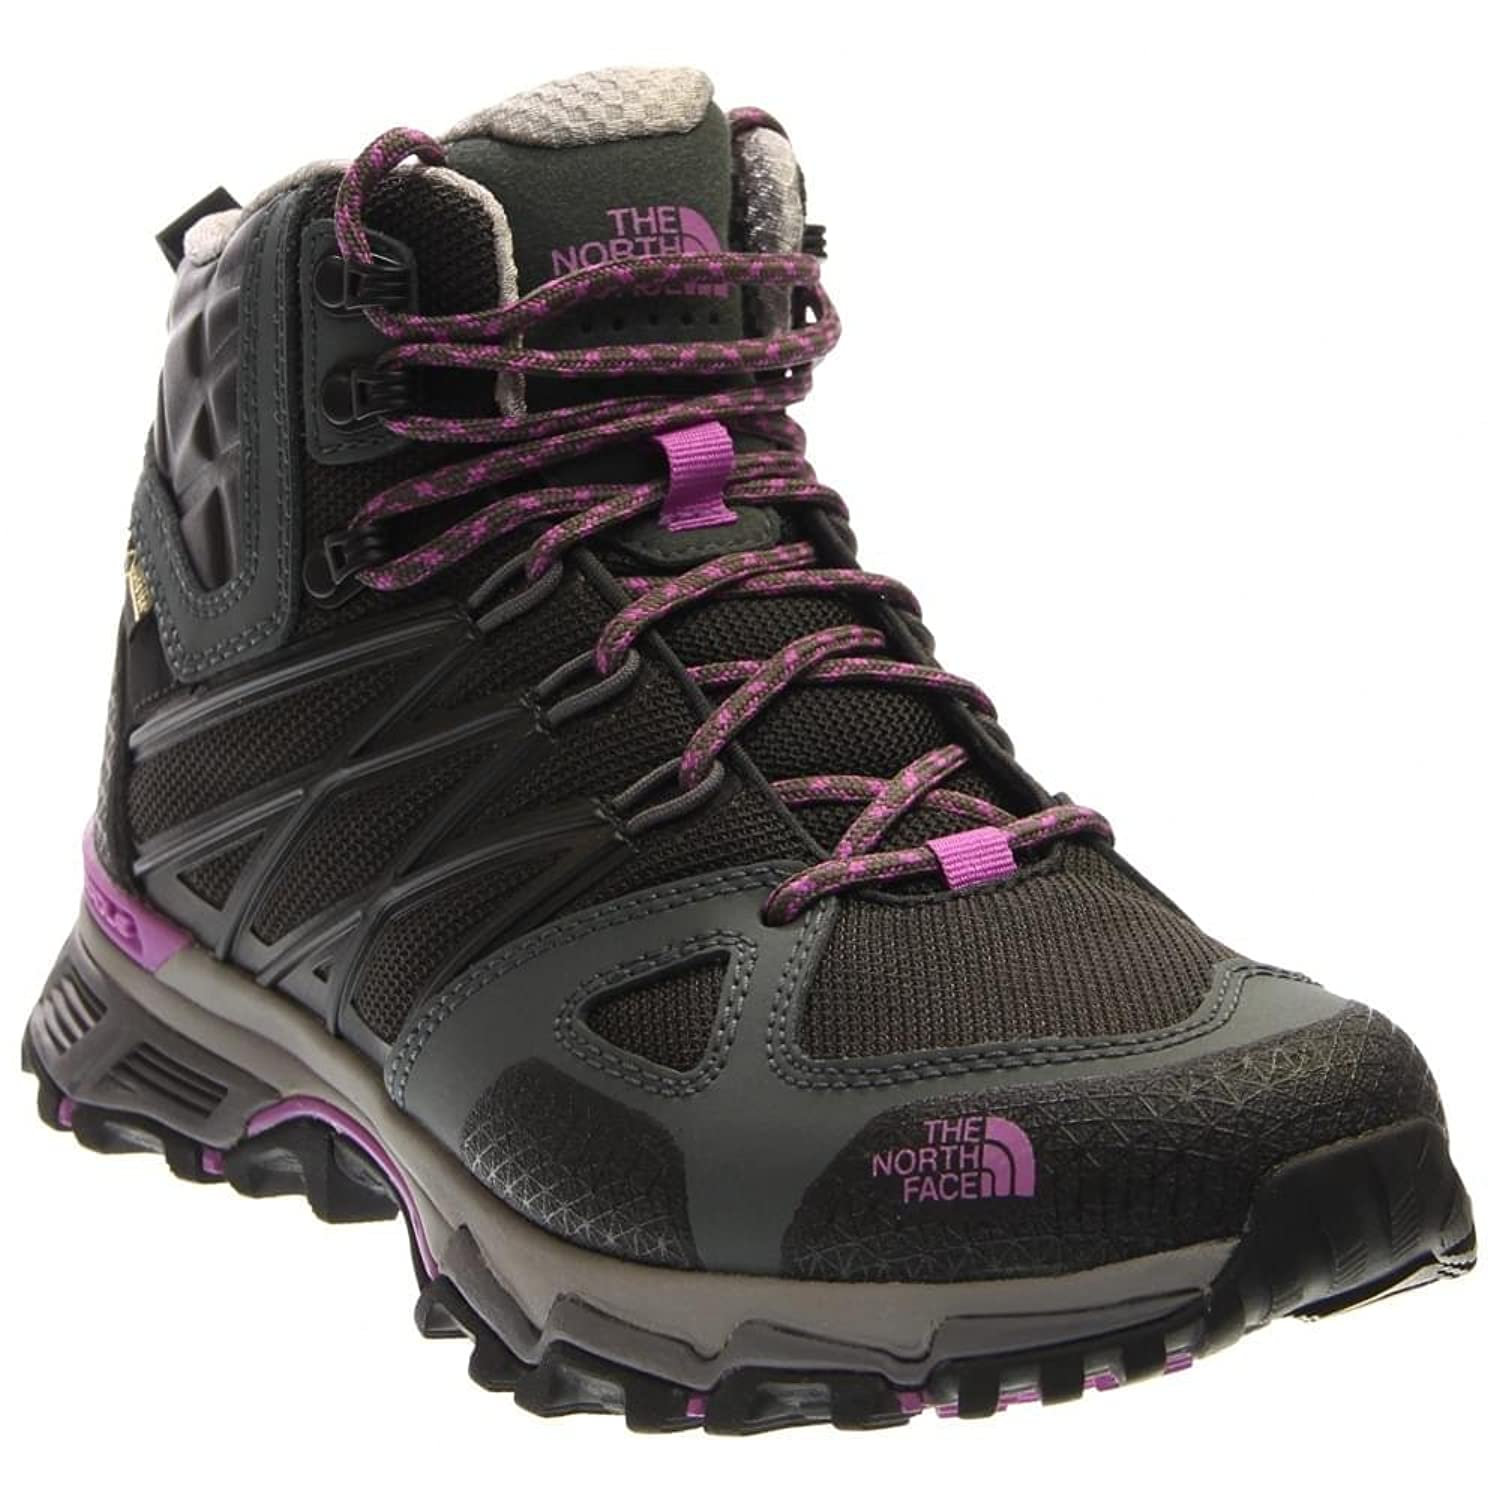 The North Face Women's Ultra Hike II Mid GTX Hiking Boot